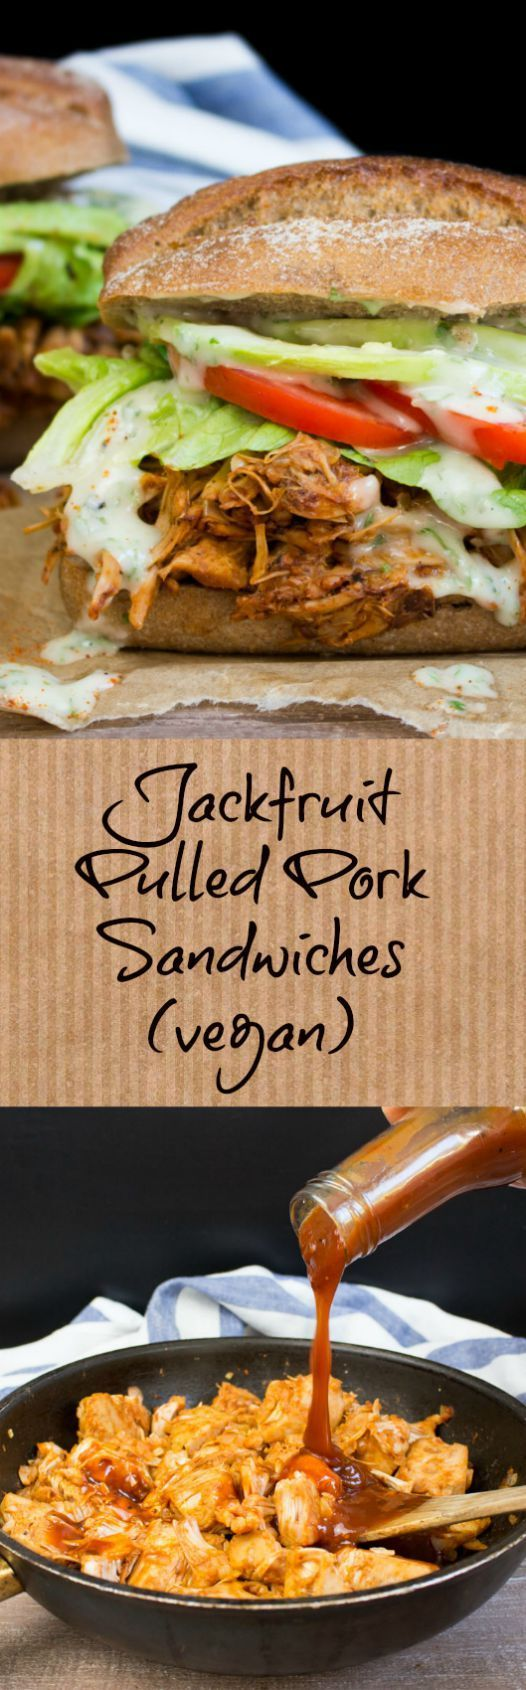 These jackfruit pulled pork sandwiches with avocado and ranch sauce don't only look like the real thing, but they also taste amazing!! #vegan #sandwich #jackfruit @veganheavenorg